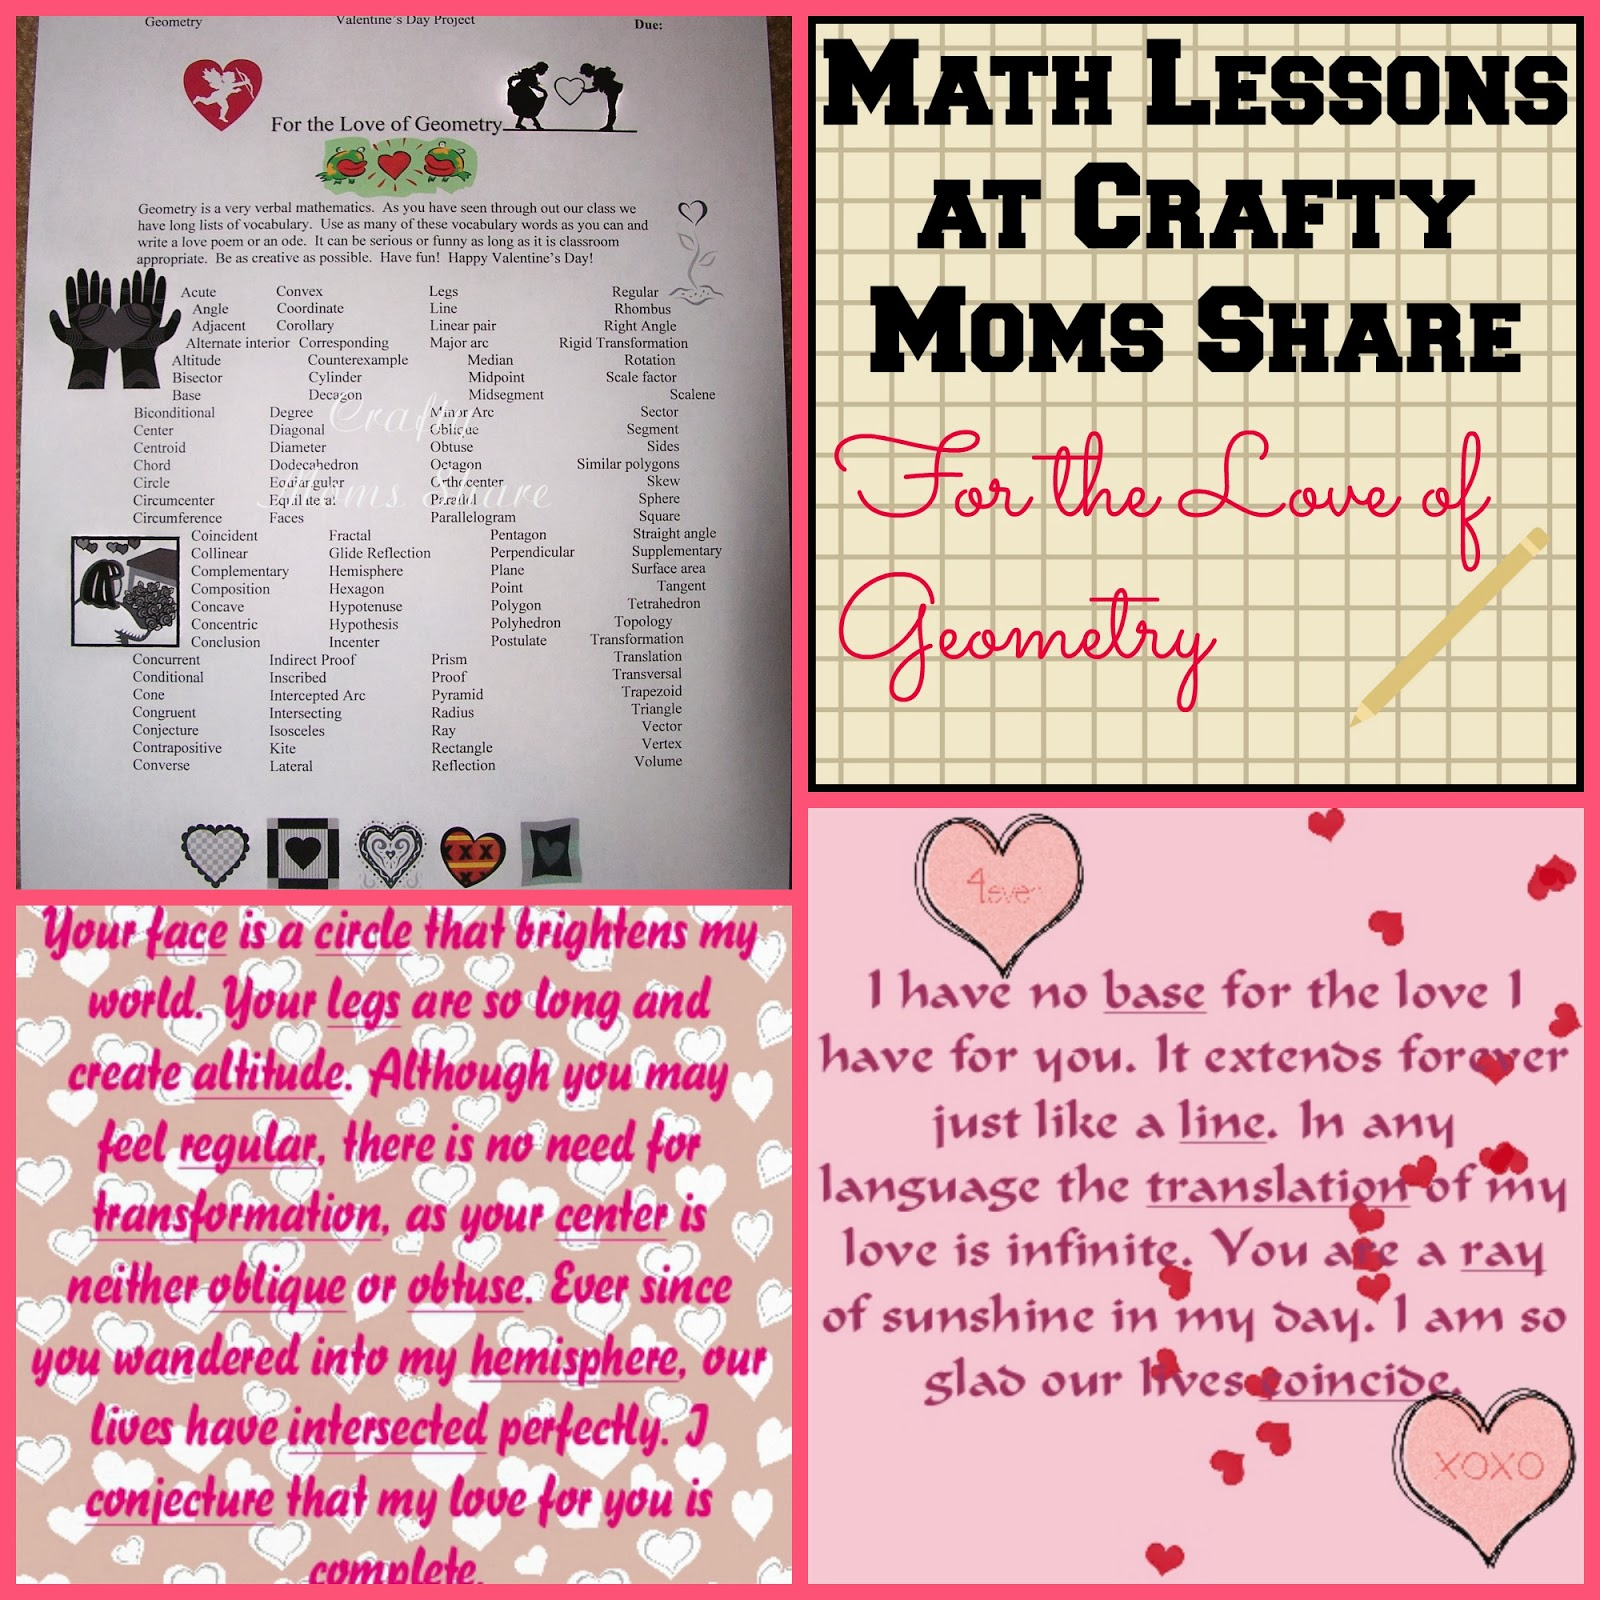 Crafty Moms Share For The Love Of Geometry Math Lessons At Crafty